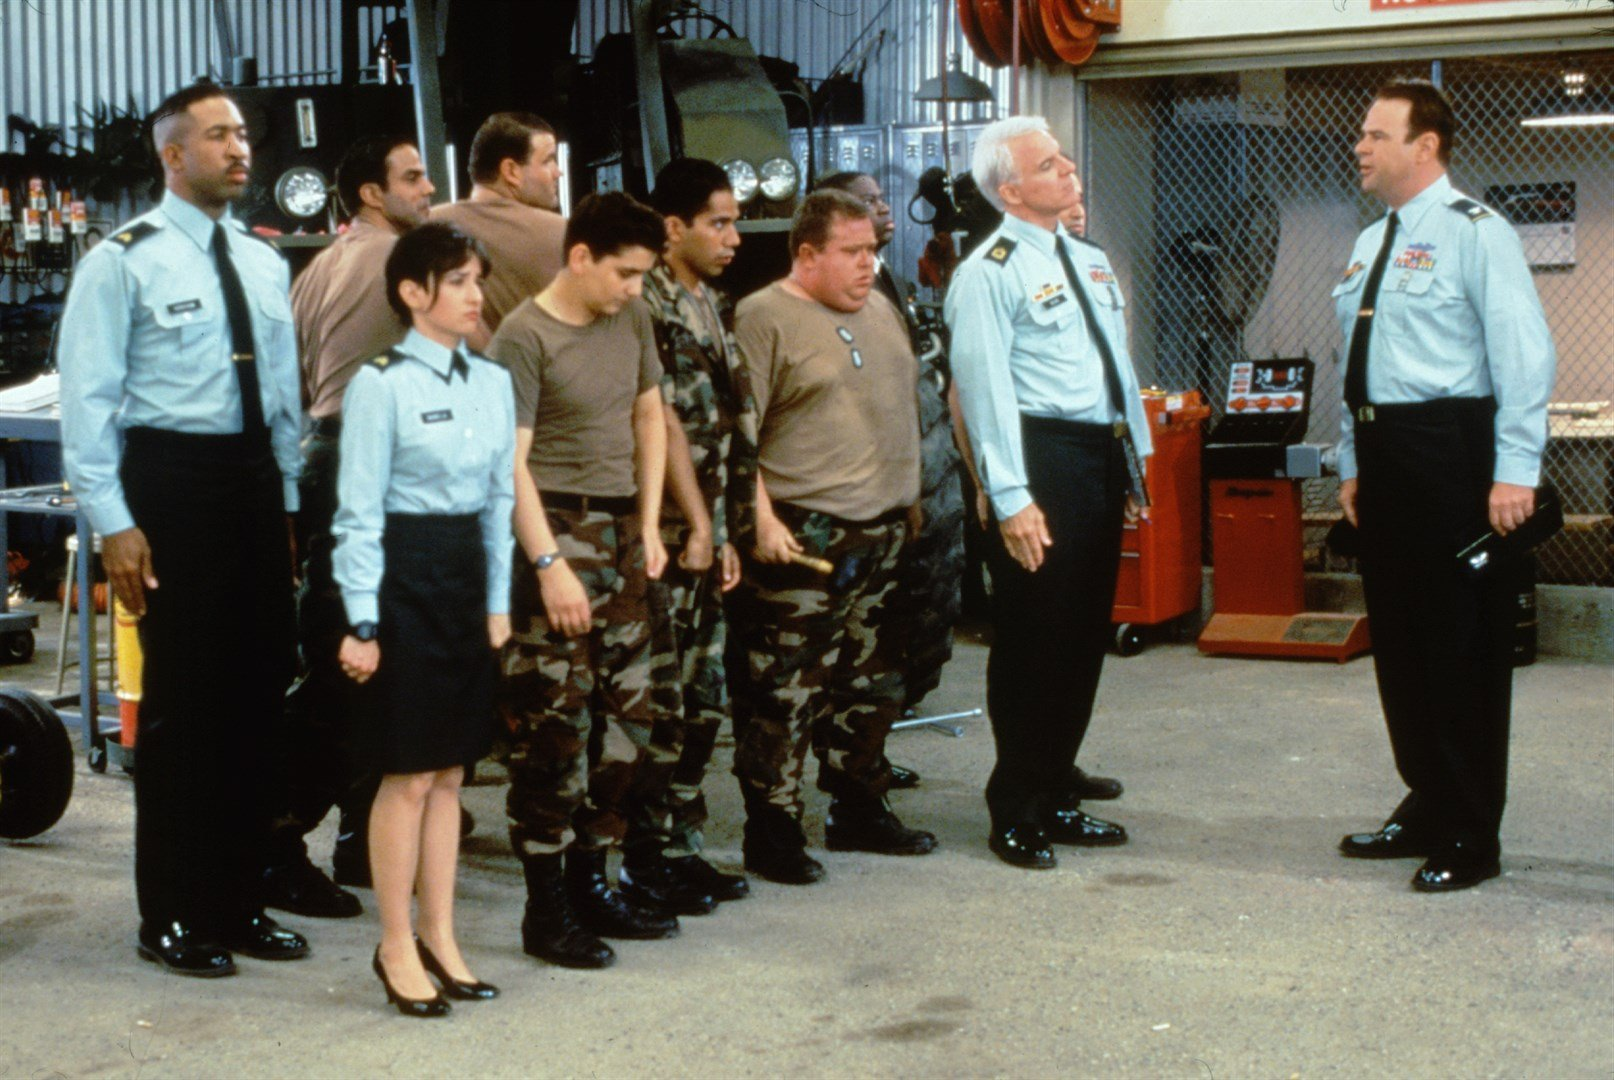 'Virtually Every Character in the Film is Either Corrupt, Corrupted or Witless' – The US Army and Sgt. Bilko